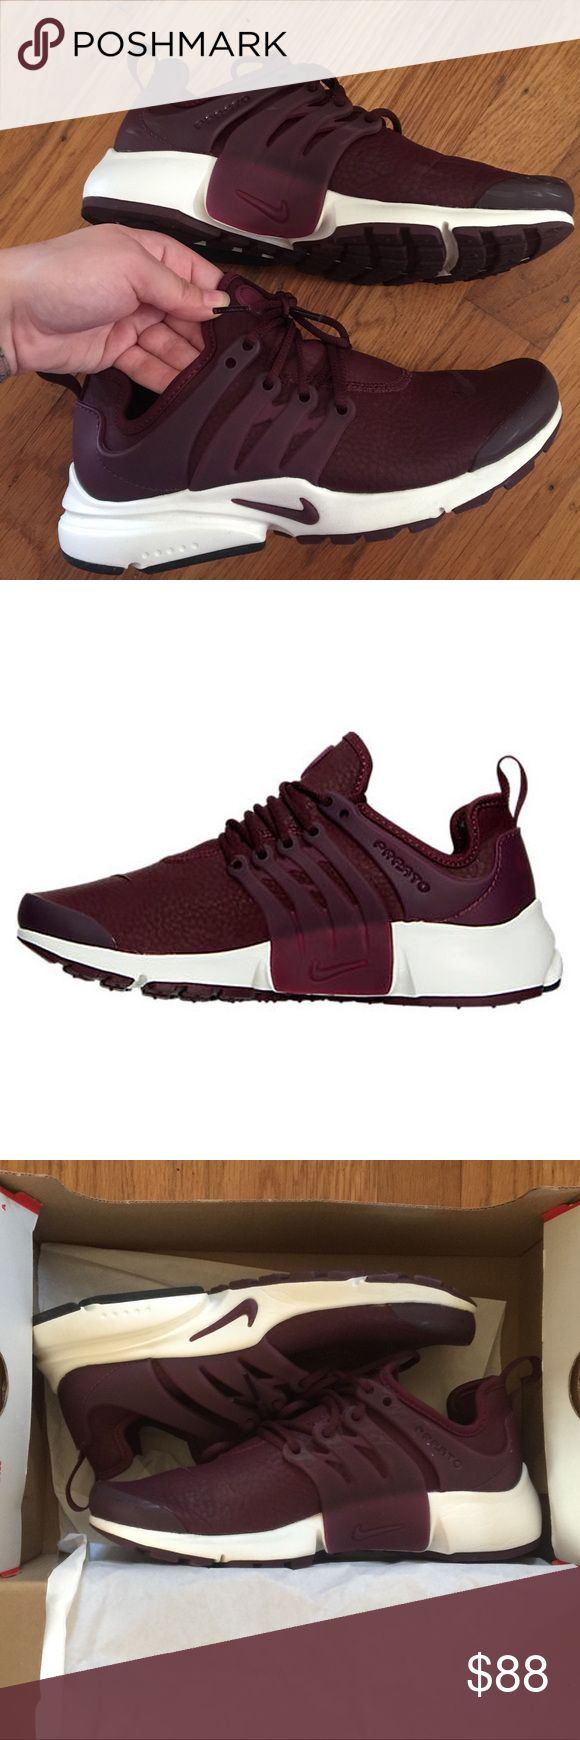 Maroon Nike Air Presto Premium Night Running Shoes Maroon Nike running shoes, in great condition. Only wore a few times. Minimal scratches, but can only see up really close. Size women's 5 or 2.5 youth. Run a tiny bit small, but your typical Nike sizing. I am a standard 5.5 in Nike so these are unfortunately slightly too small for me, I'm bummed because they're so cute. Comes with box! Price is somewhat negotiable, feel free to make an offer! Nike Shoes Athletic Shoes